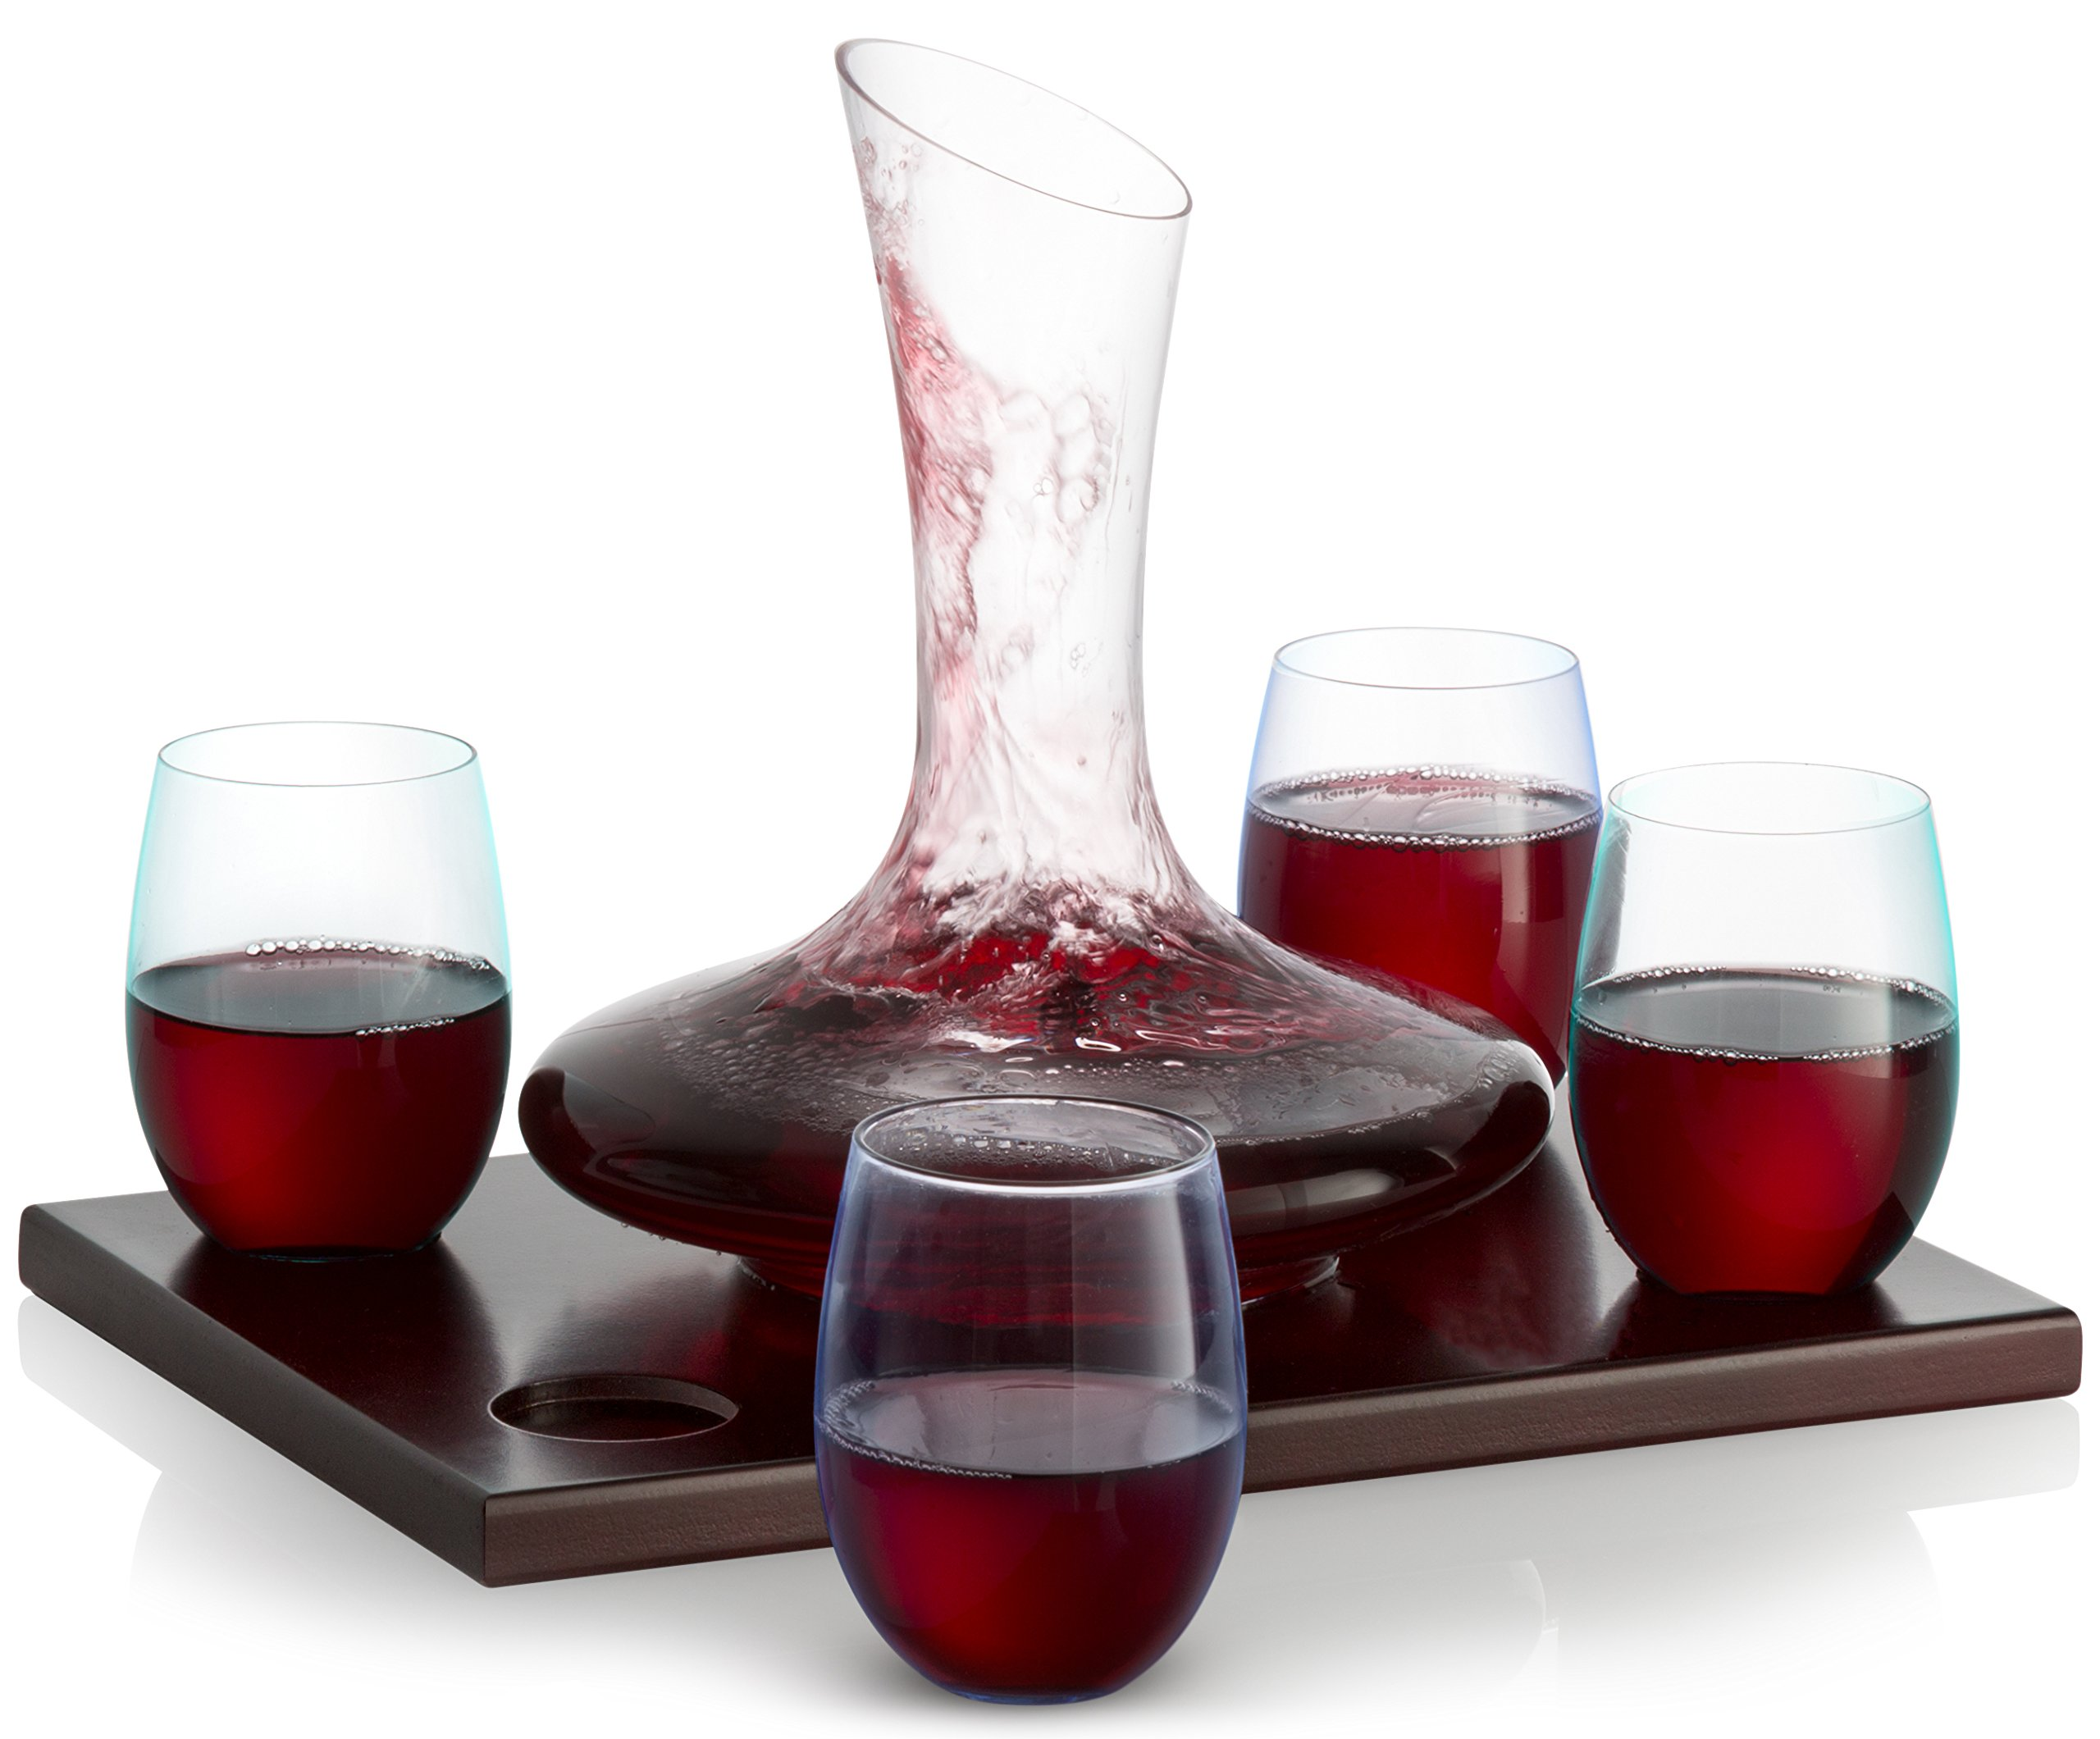 Royal Decanters Wine Decanter Set with Wood Base - With 750ml Crystal Glass Decanter and 4 Stemless Wine Glasses - Great Gift and Beautiful Display Piece for Red or White Wine - Patent Pending Design by Royal Decanters